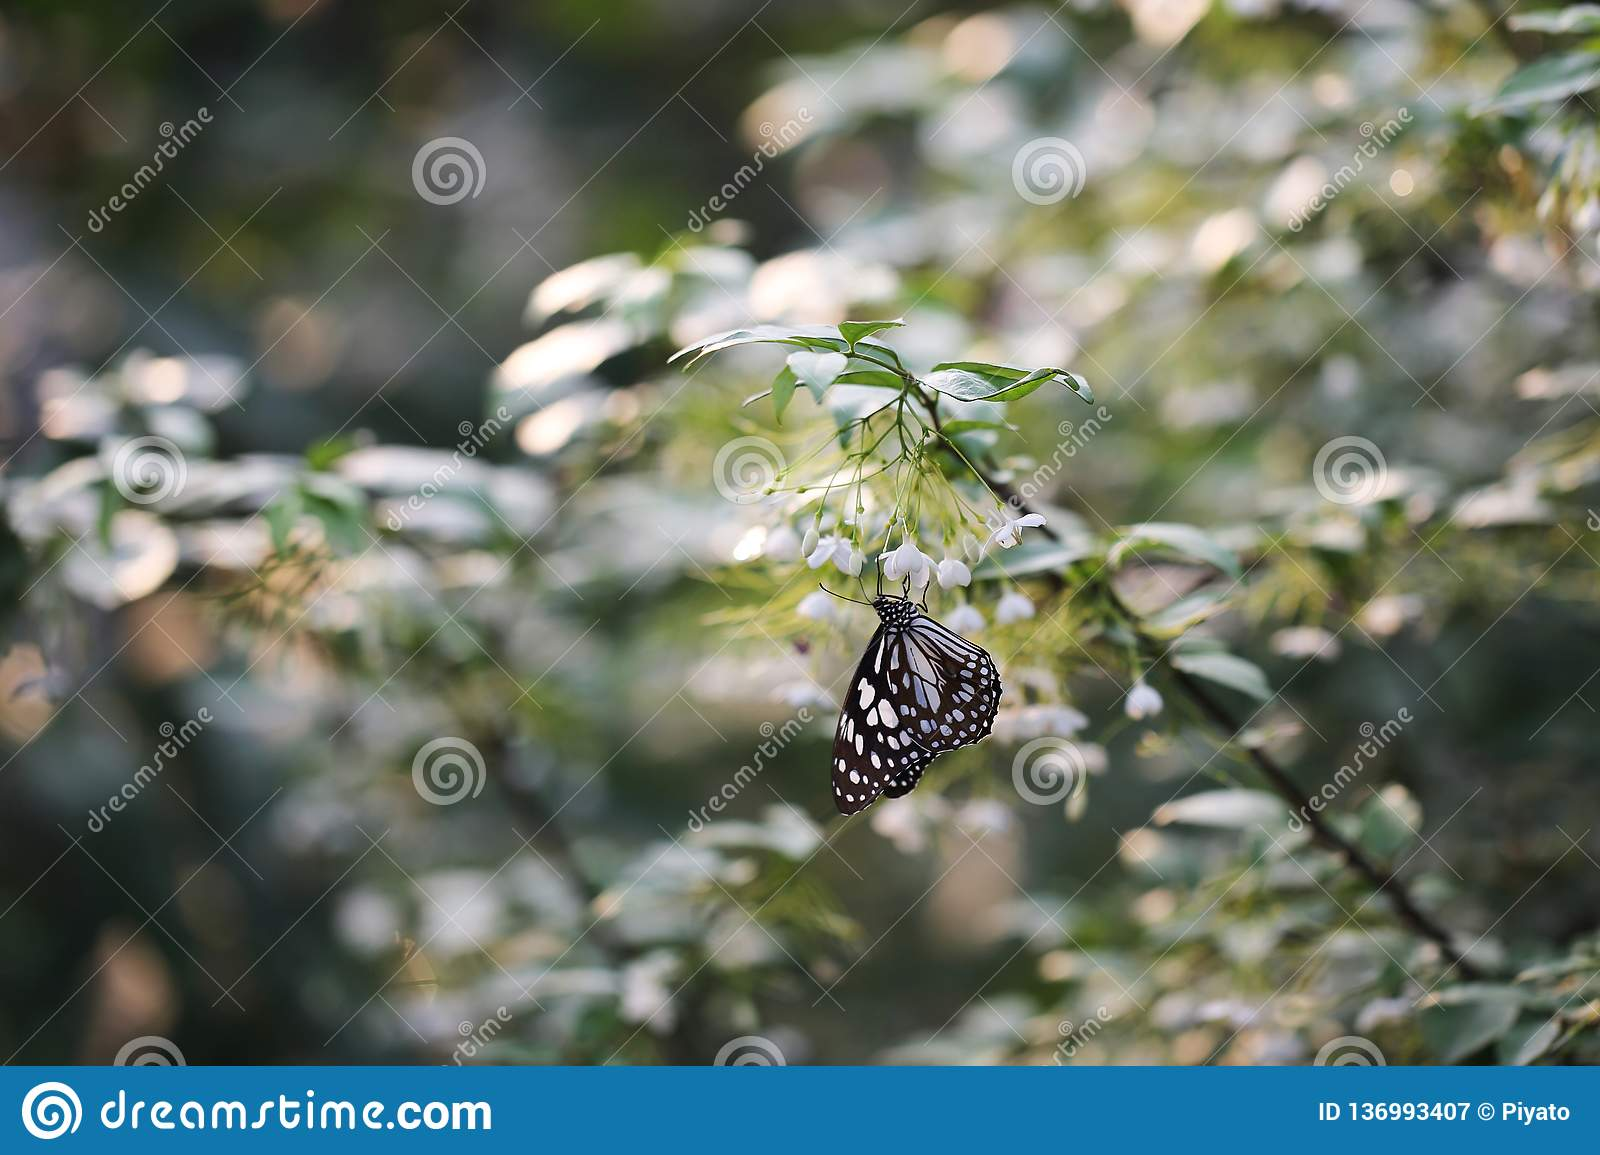 Butterfly fly in morning nature royalty free stock photography